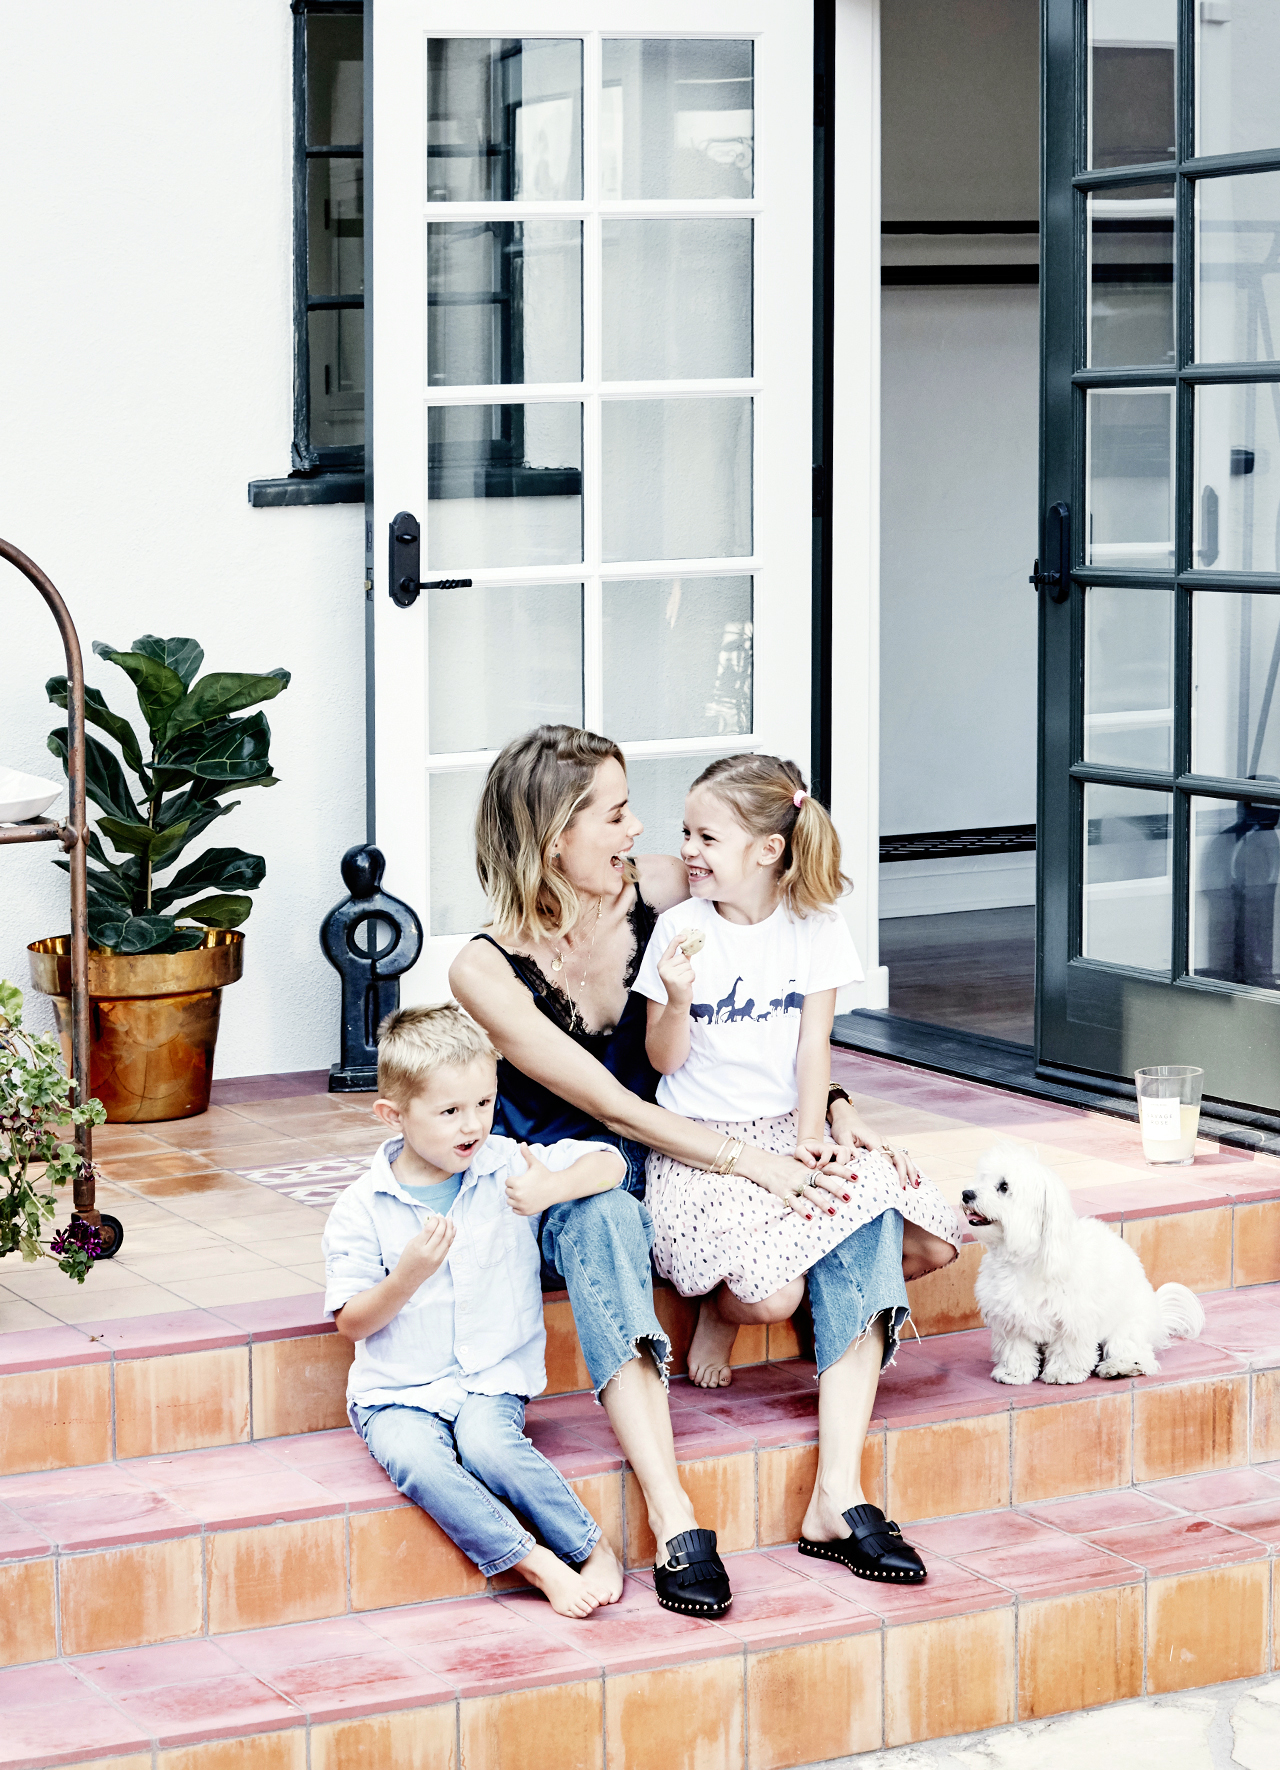 home fashion design. We step inside the family home of L A based fashion designer Anine Bing  as she opens up about motherhood guilt and chasing balance Step Inside s Home MyDomaine